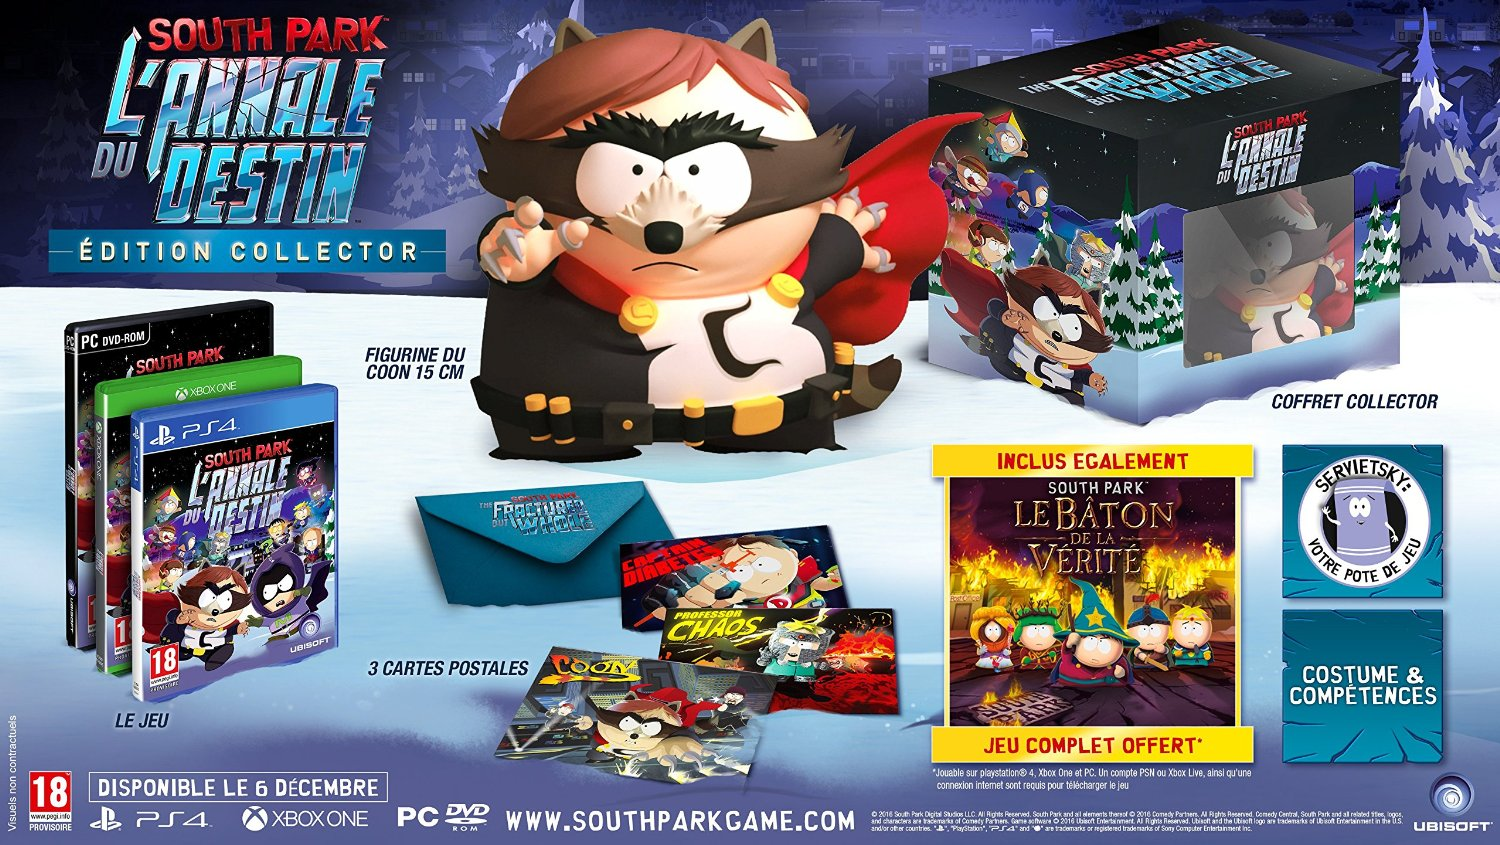 South Park The Fractured but Whole collector